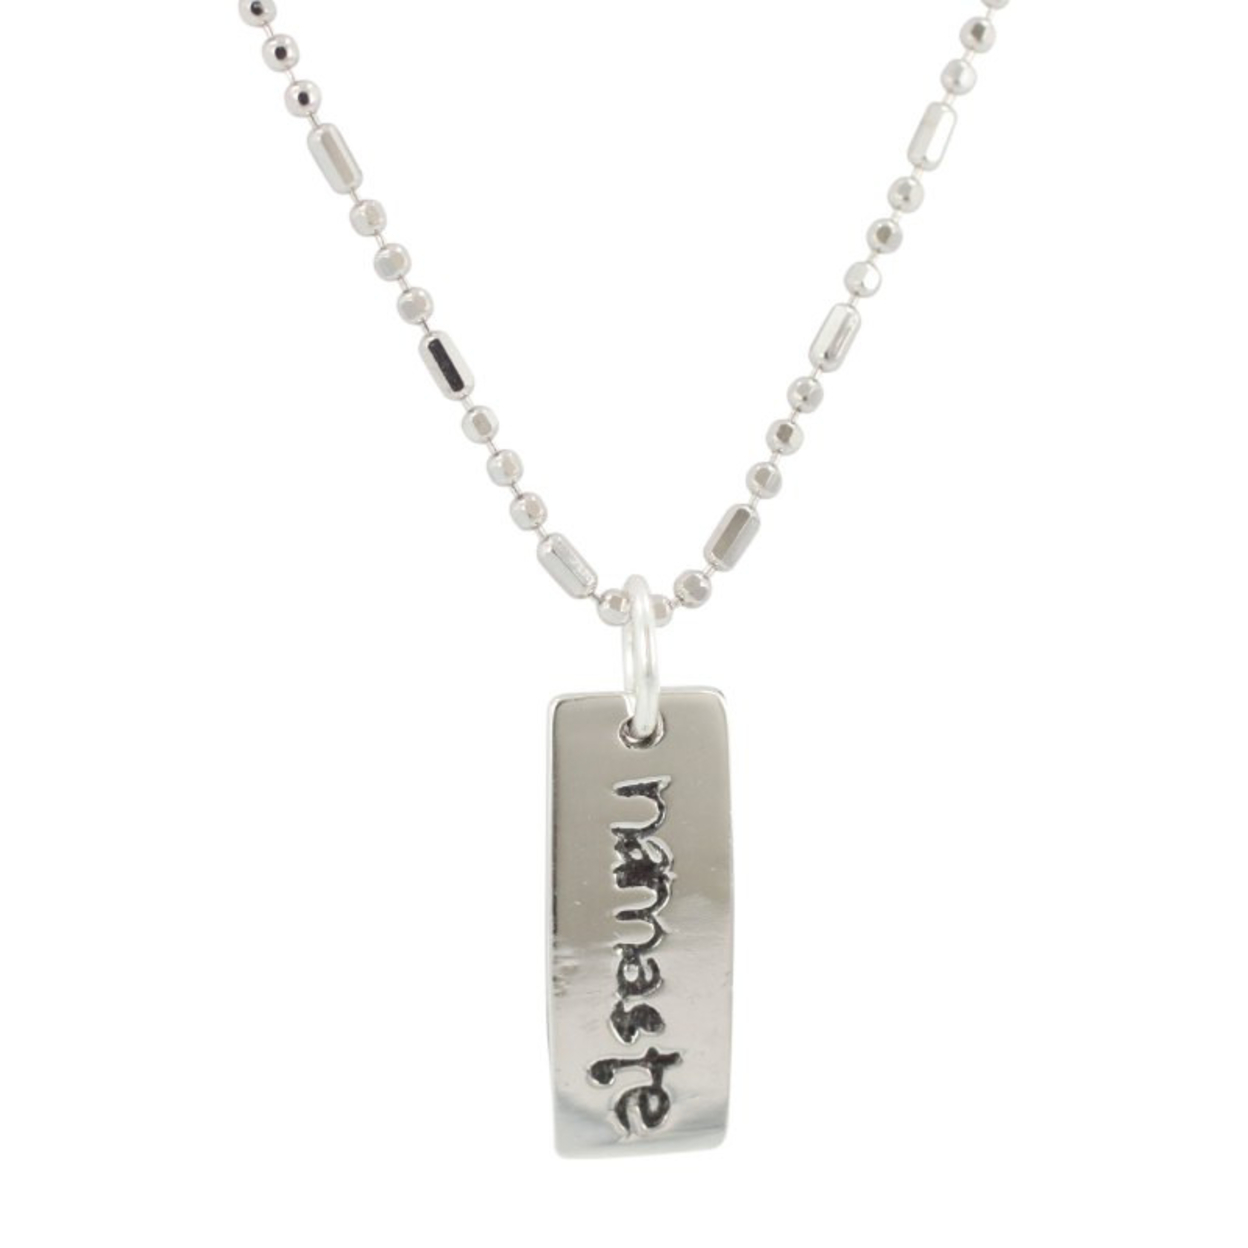 Namaste Double Sided Word Pendant In Sterling Silver On Bead Chain, #7057s